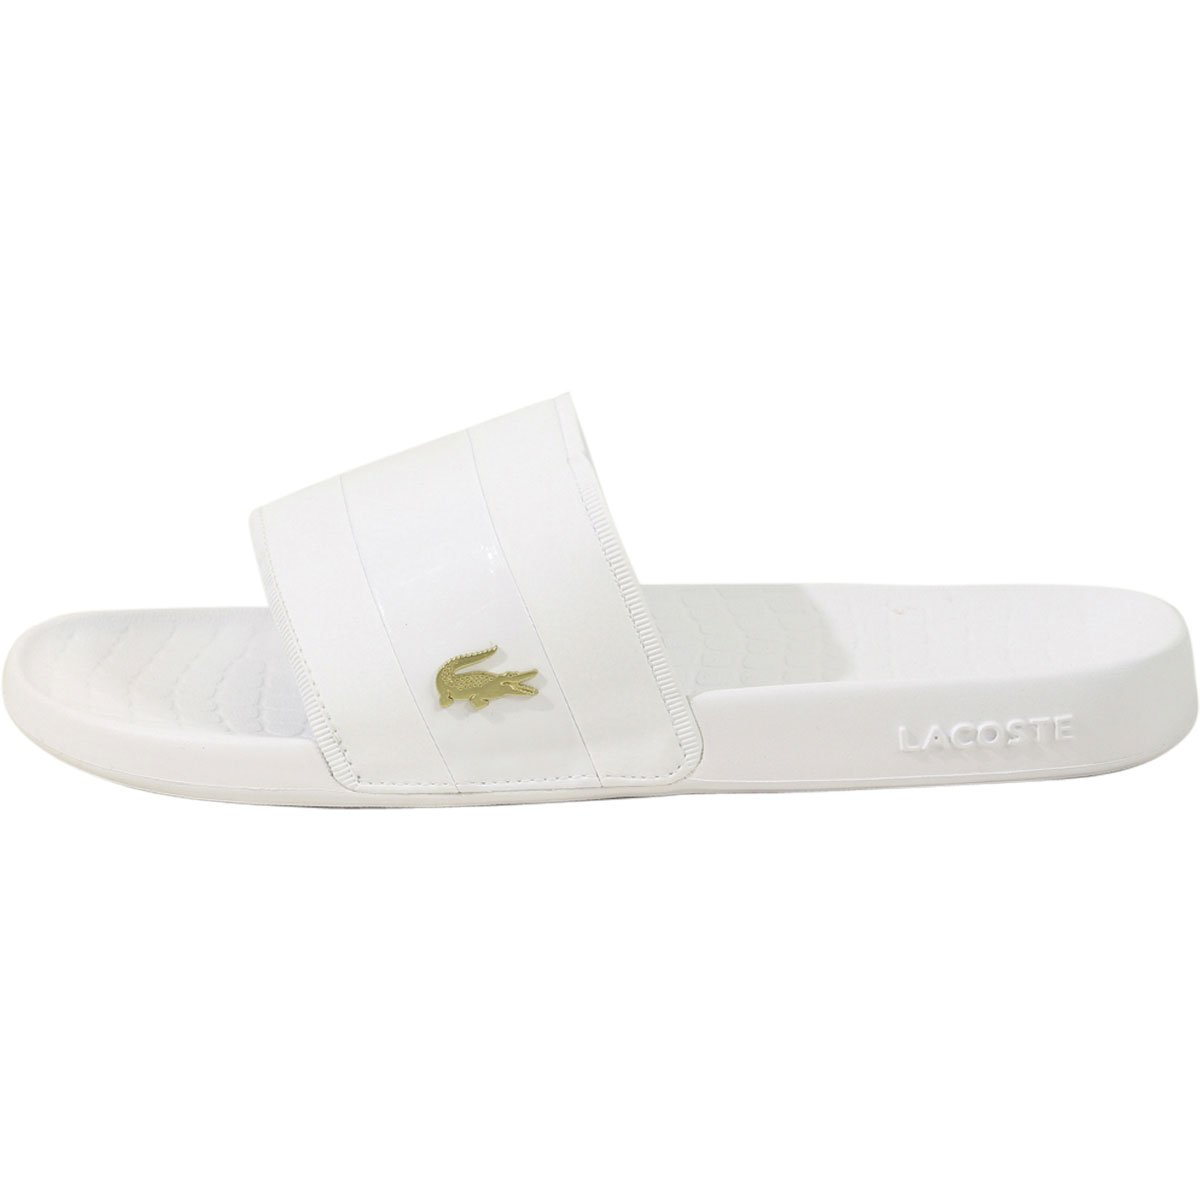 ae88fb8e5060 Lacoste Fraisier Sandals Men s Shoes Size  Buy Online at Low Prices in India  - Amazon.in